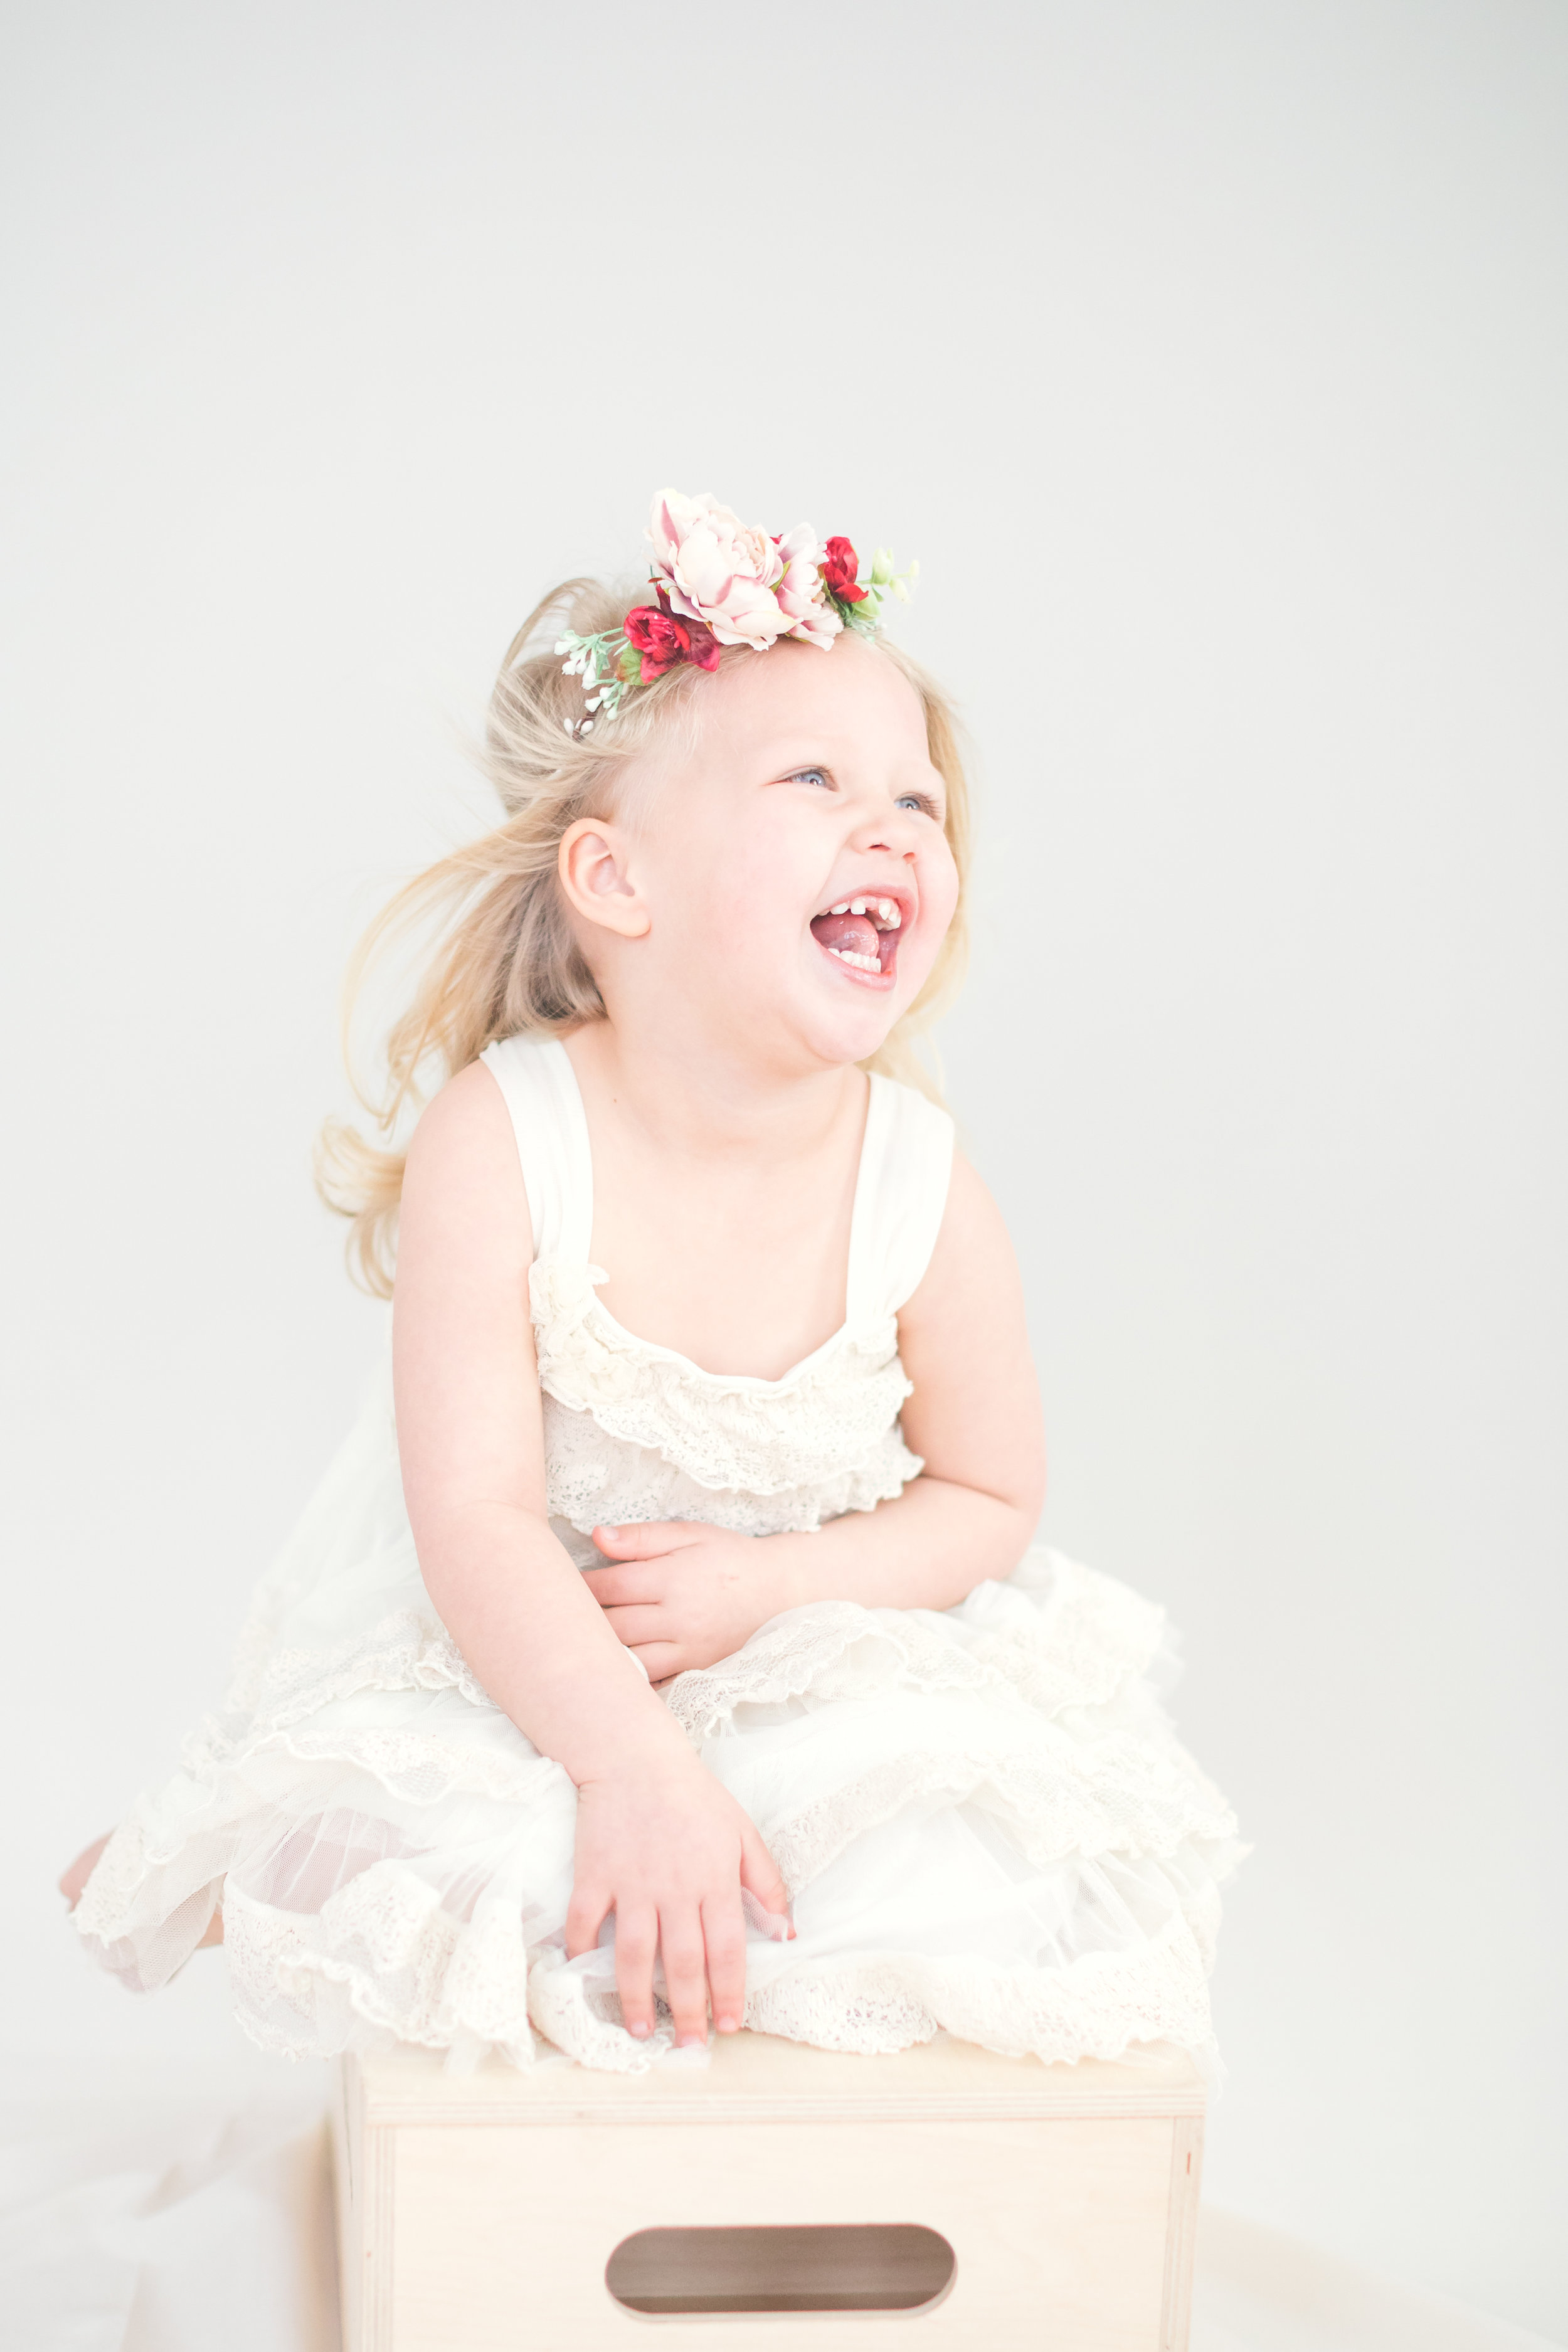 3-year-old flower crown portraits. Mother-daughter photos. Greater Boston family photographer.